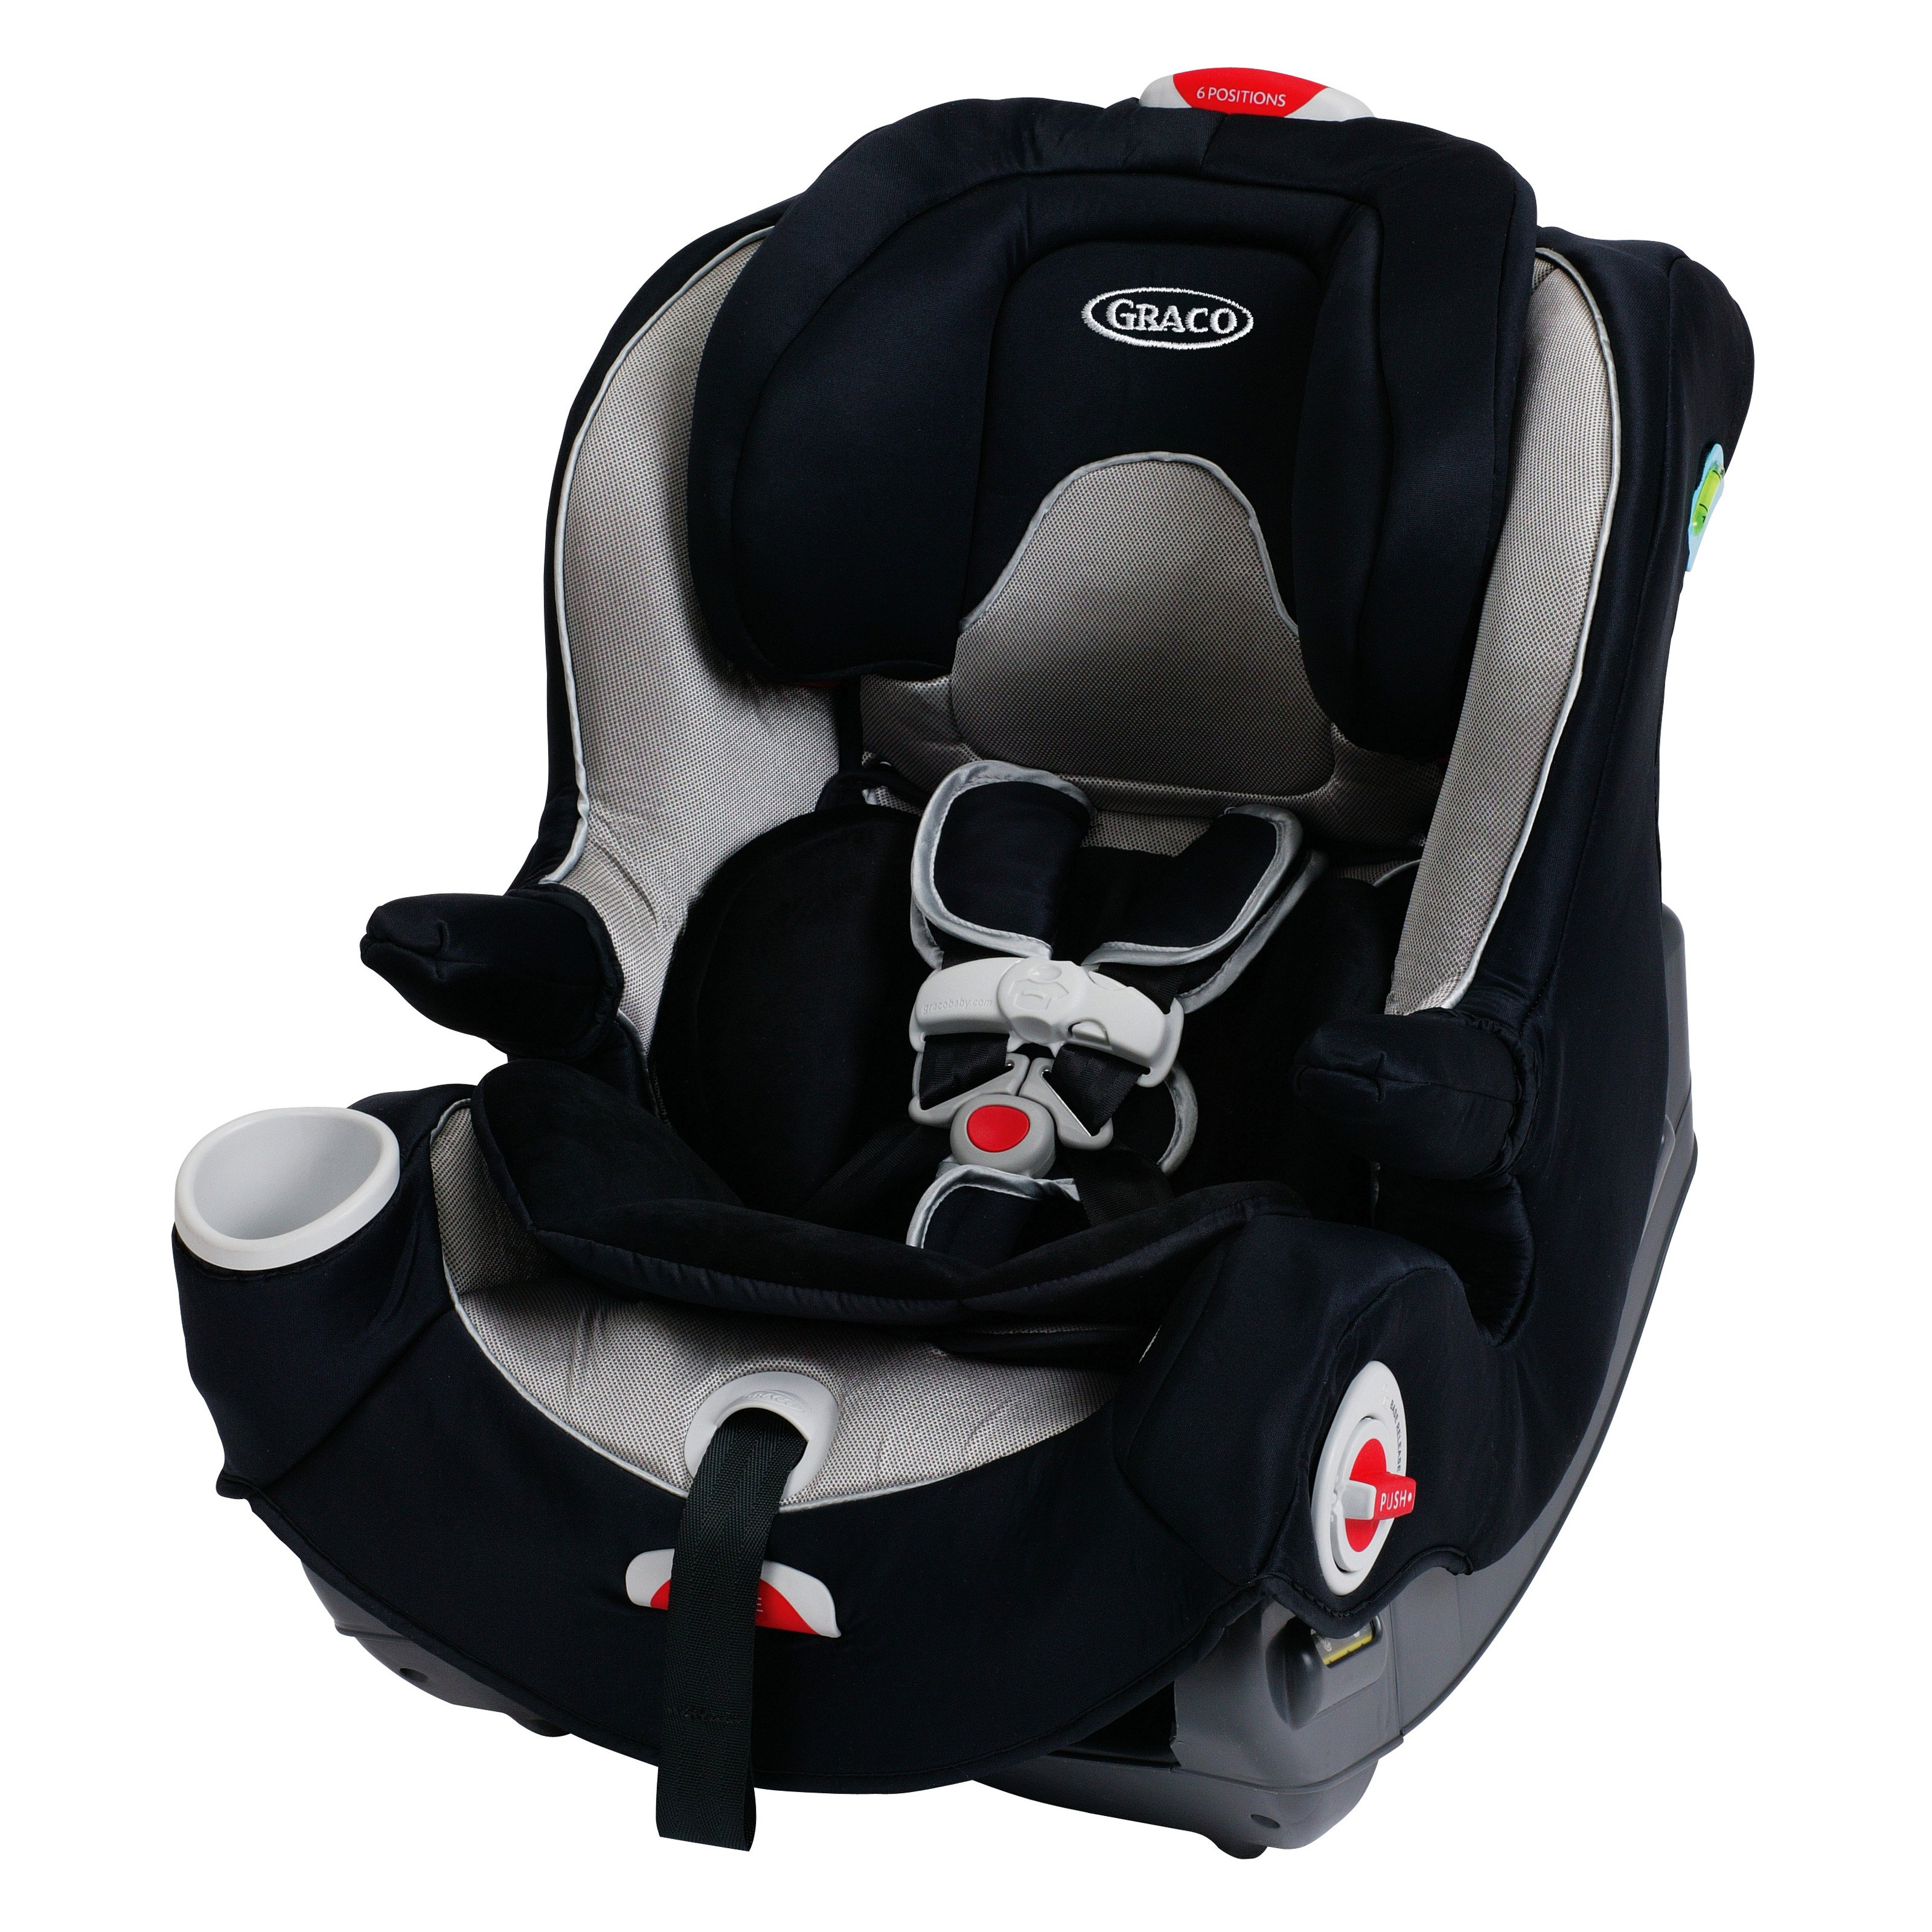 Graco Smart Seat All-in-One Convertible Car Seat, Ryker